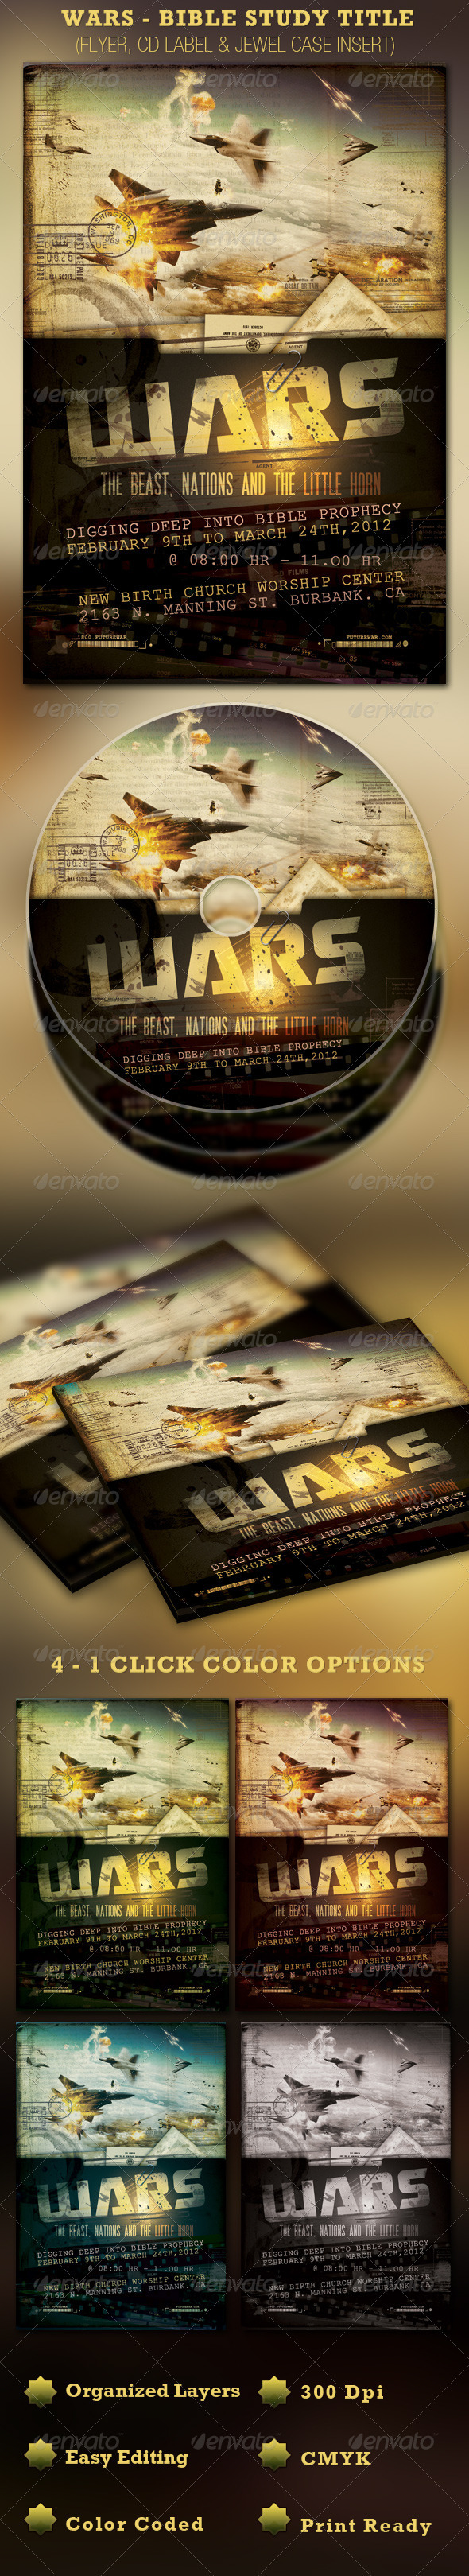 Wars Church Flyer and CD Template - Church Flyers